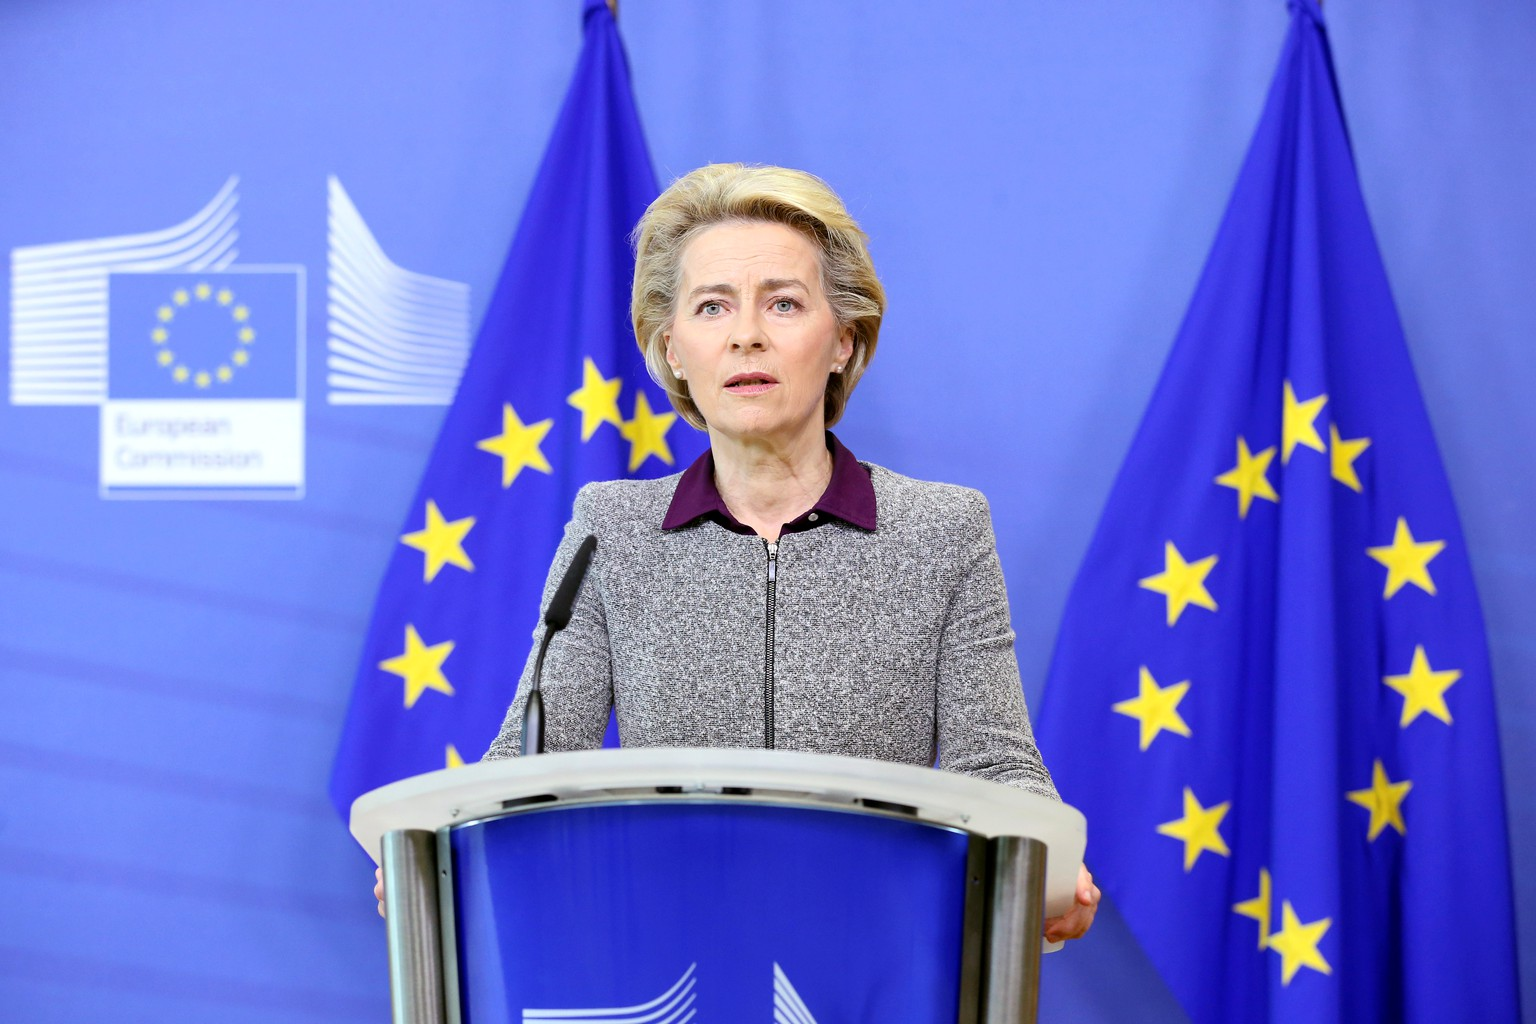 European Commission President Ursula von der Leyen addresses a news conference following the resignation of the EU trade commissioner Phil Hogan, in Brussels, Belgium, August 27, 2020. Francois Walschaerts/Pool via REUTERS